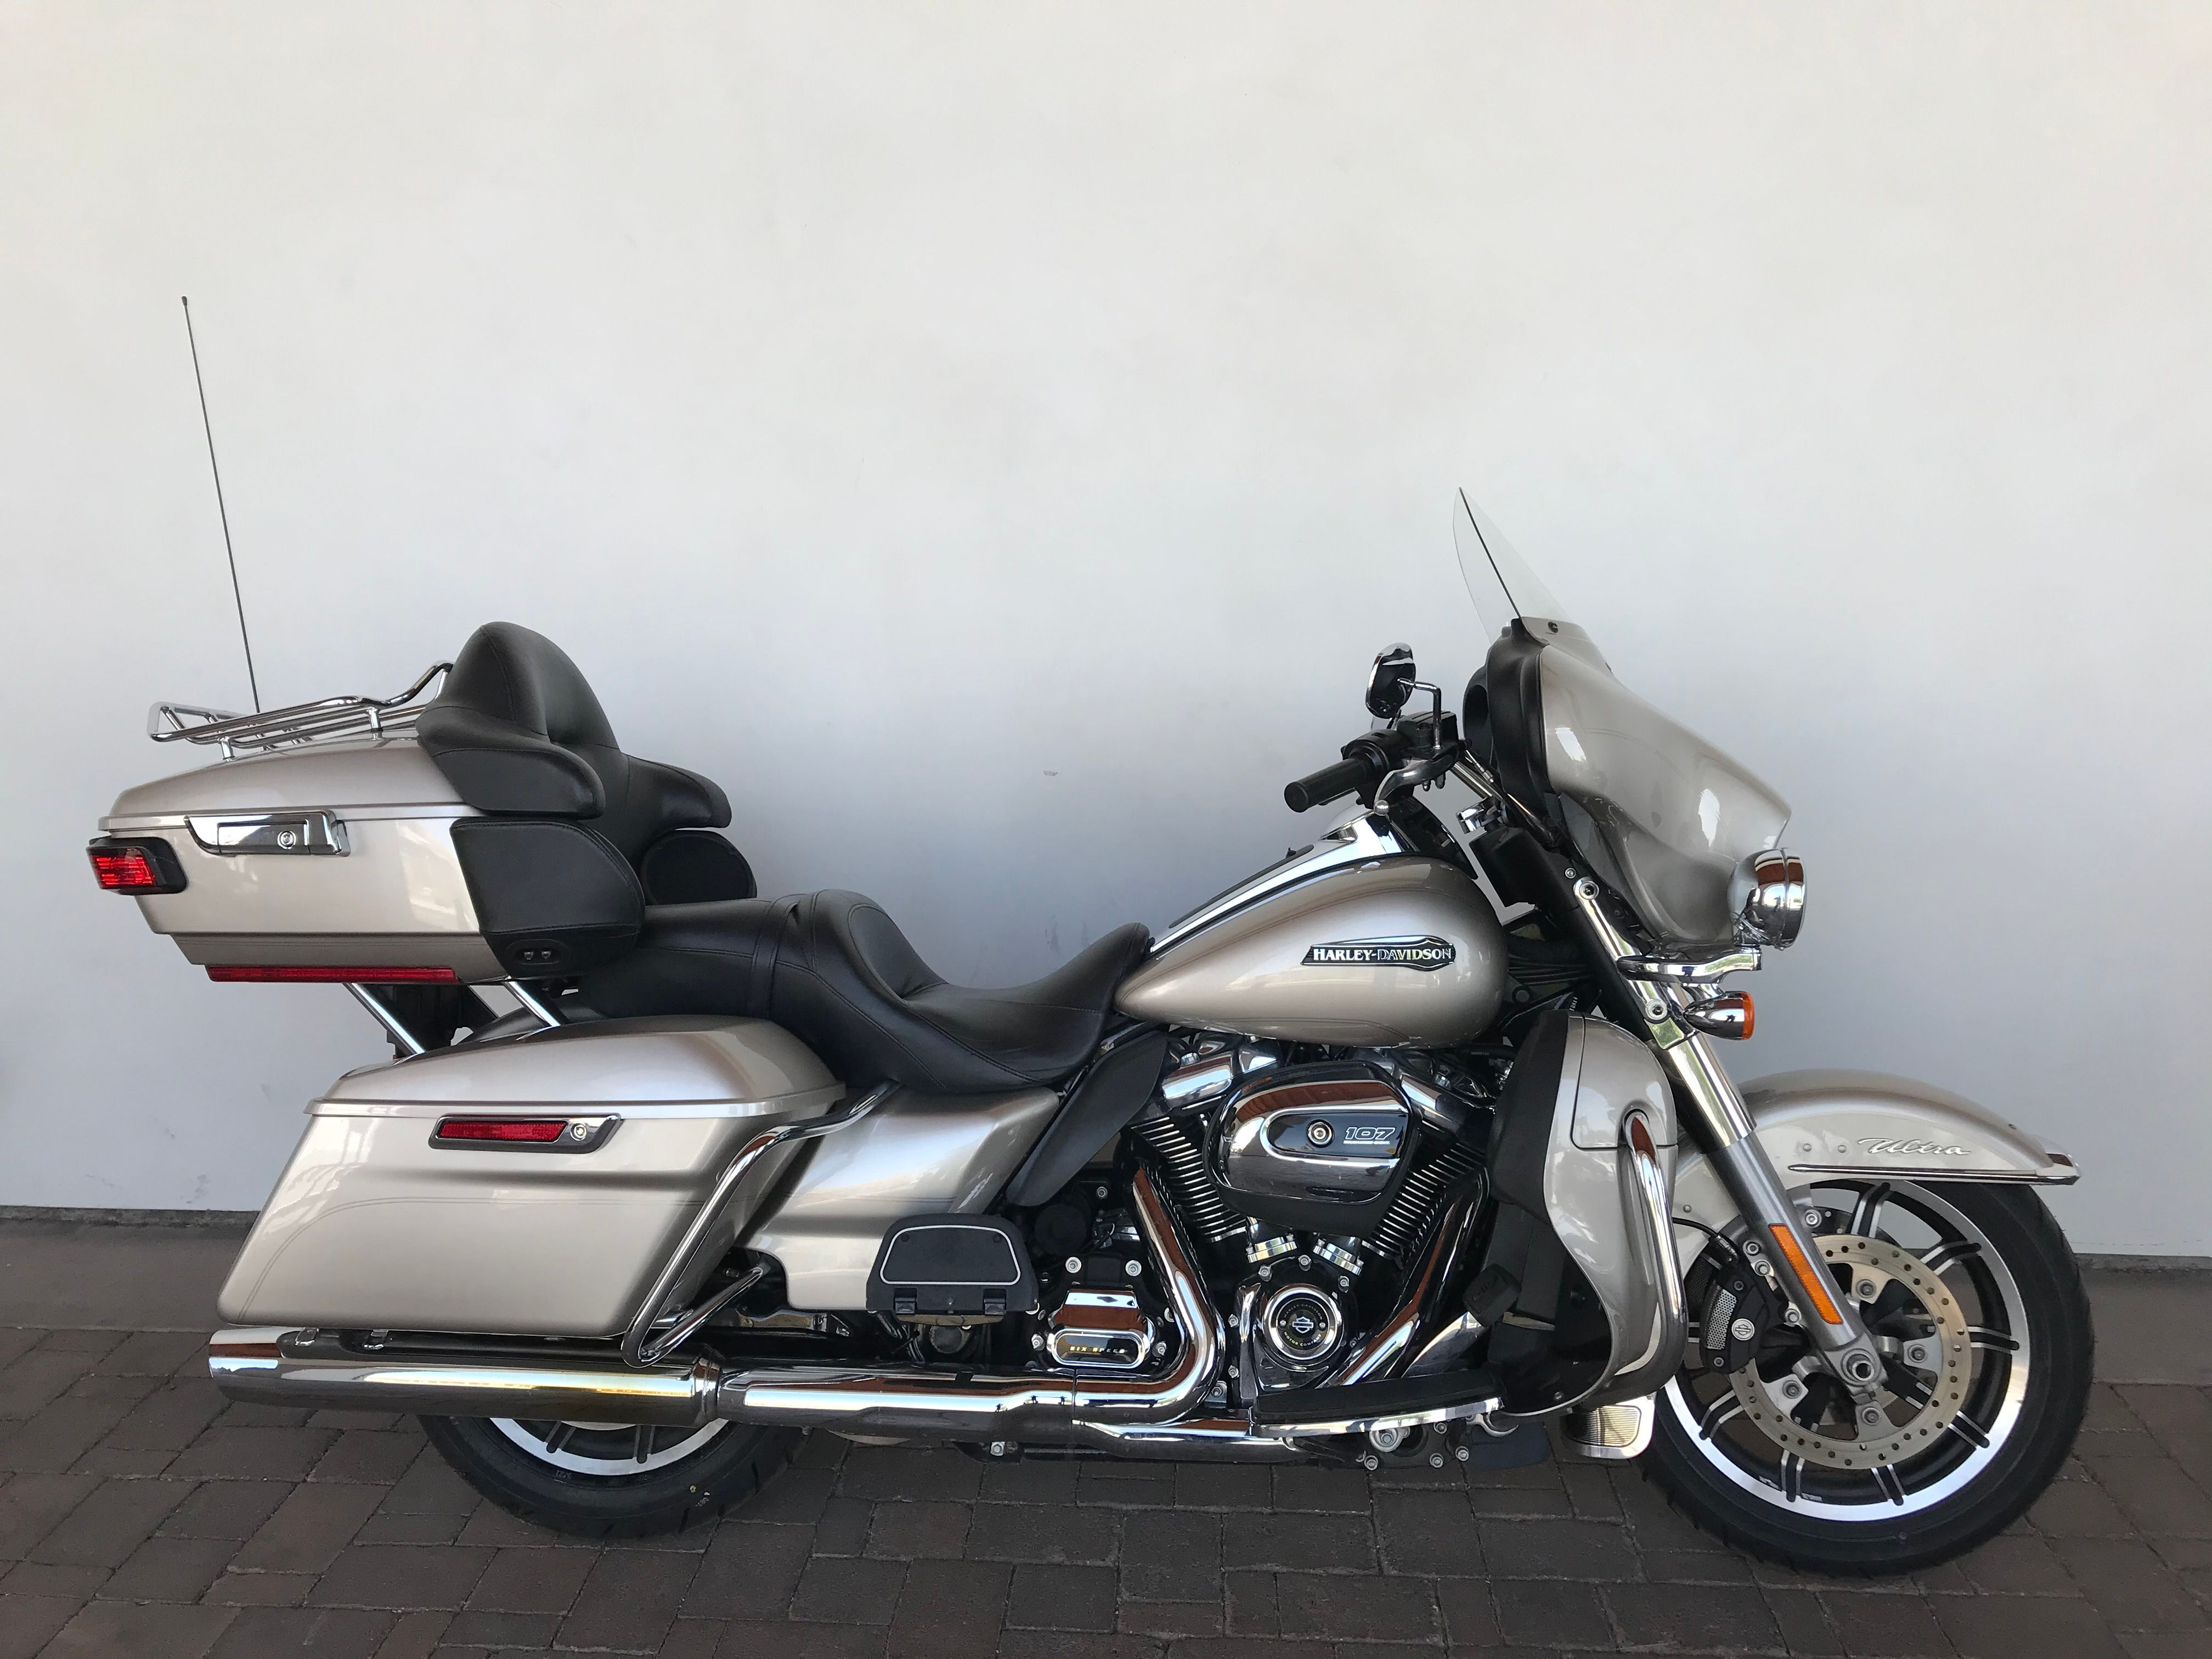 Pre-Owned 2018 Harley-Davidson Touring Electra Glide Ultra Classic FLHTCU